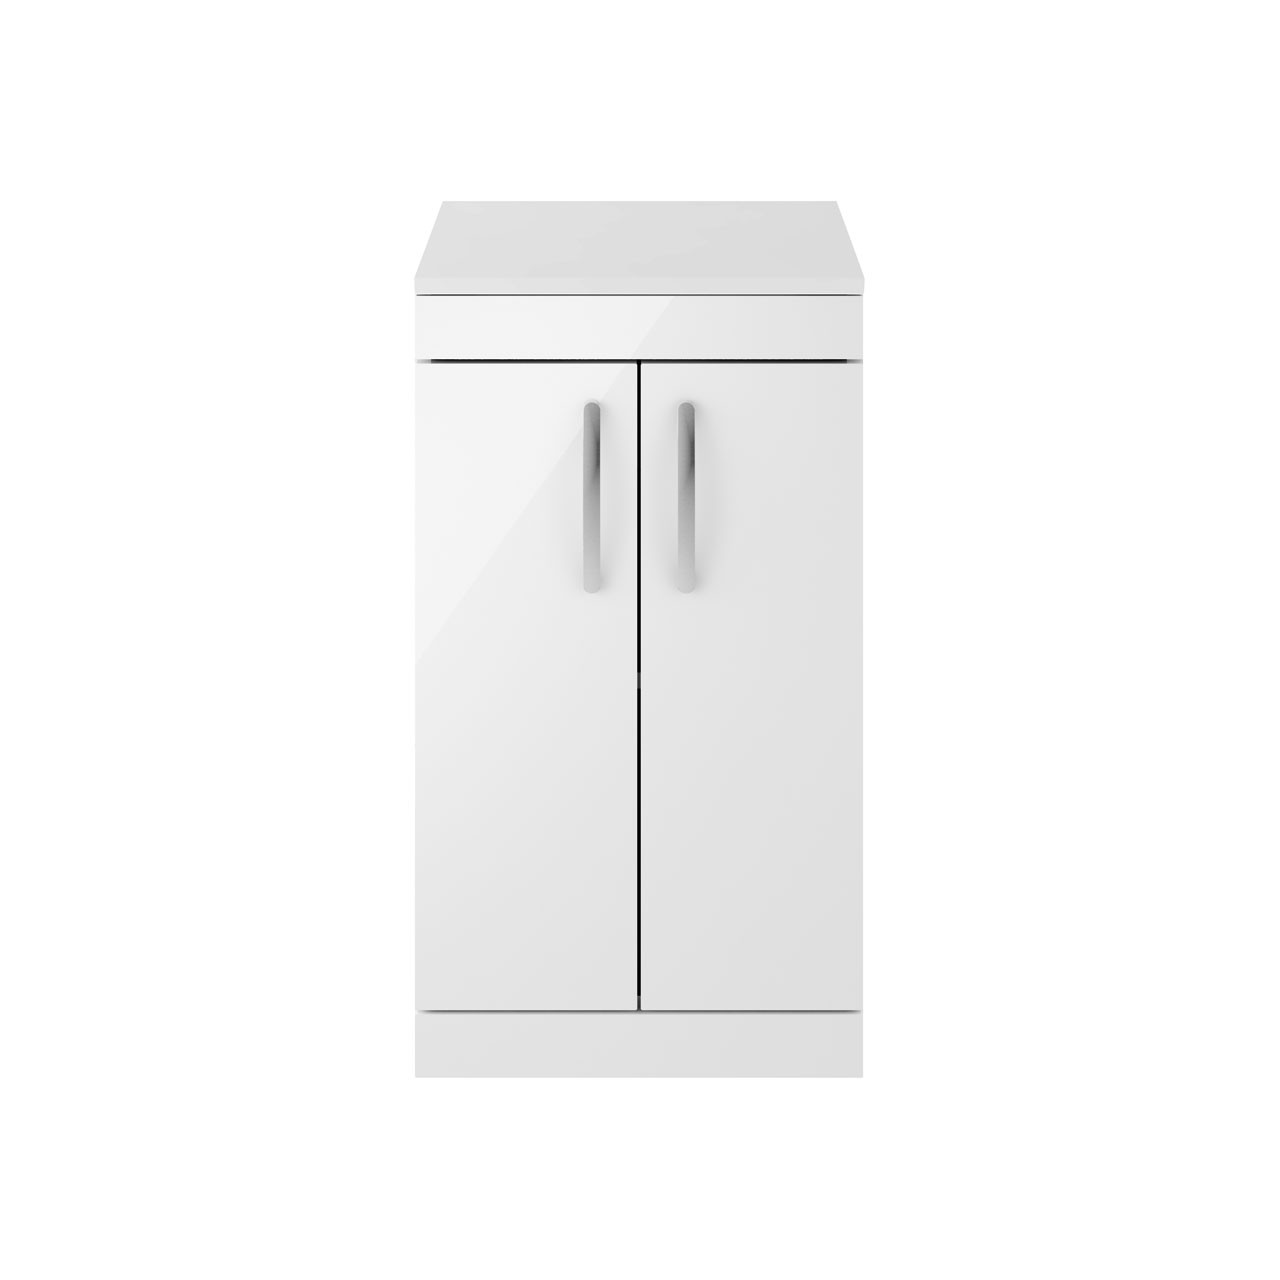 Premier Athena Gloss White 500mm 2 Door Vanity Unit with Worktop - ATH006W